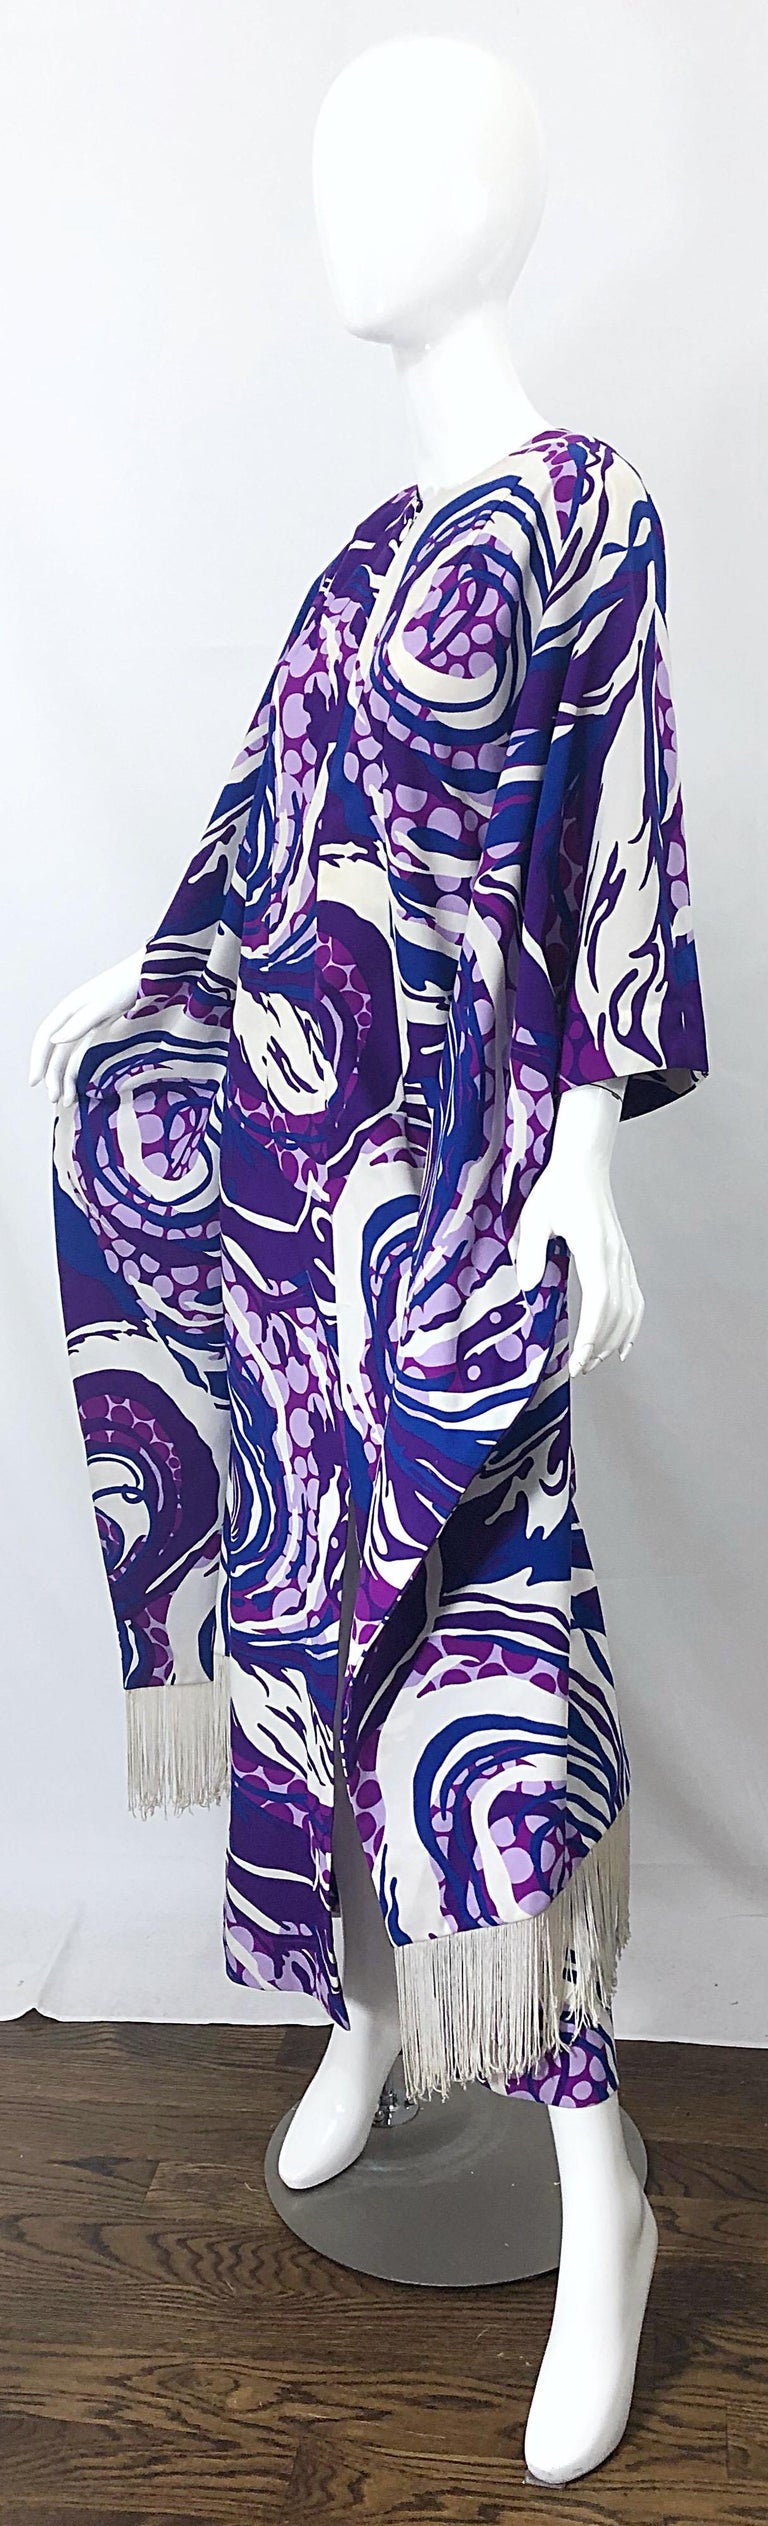 Amazing 1970s Fringed Purple and Blue Abstract Swirl Print Vintage 70s Caftan For Sale 1